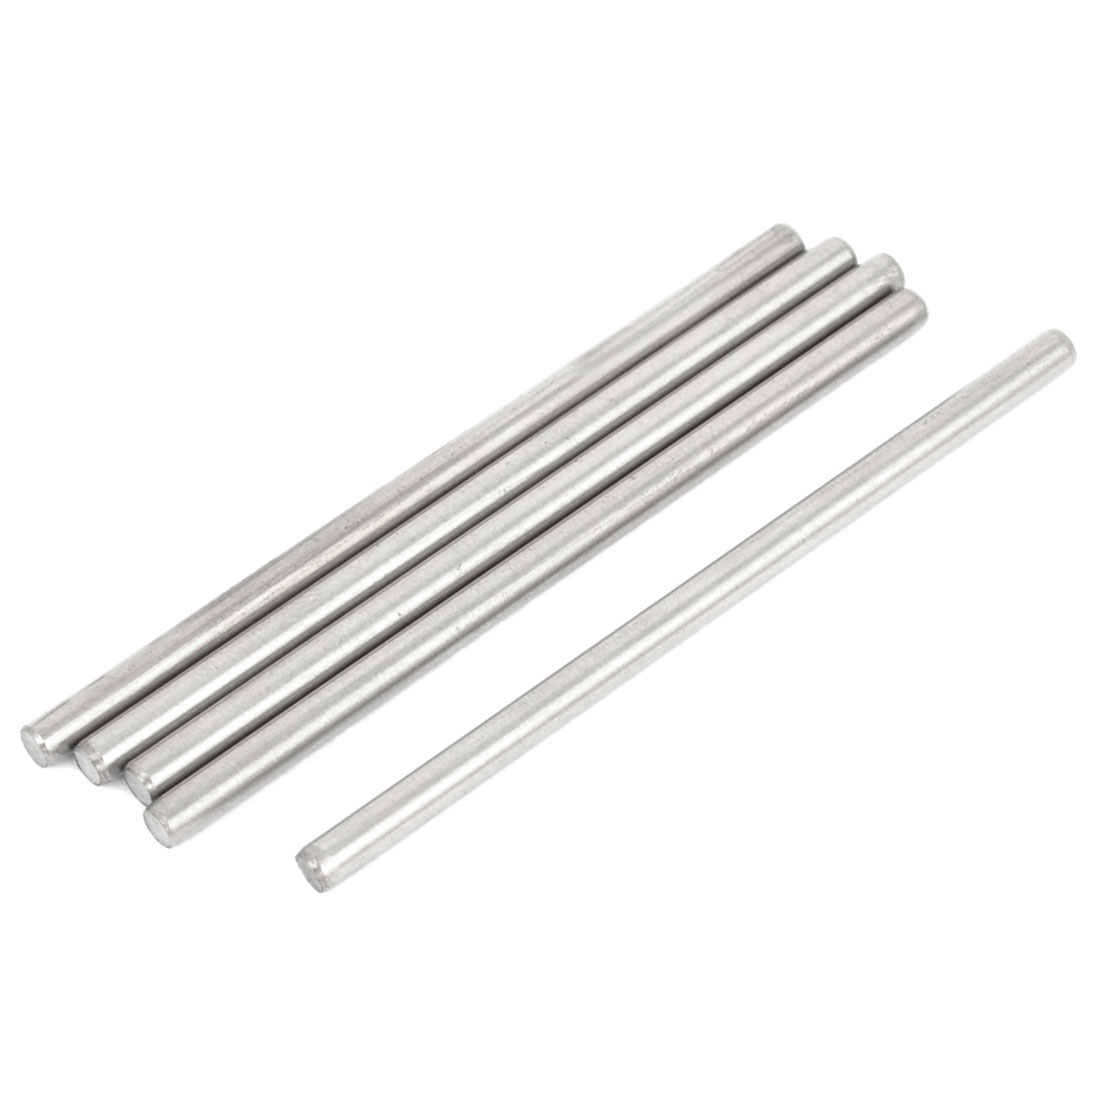 "Mi... Value Collection 1-3//8/"" Diam x 3/' Long 12L14 Steel Round Rod Cold Finish"